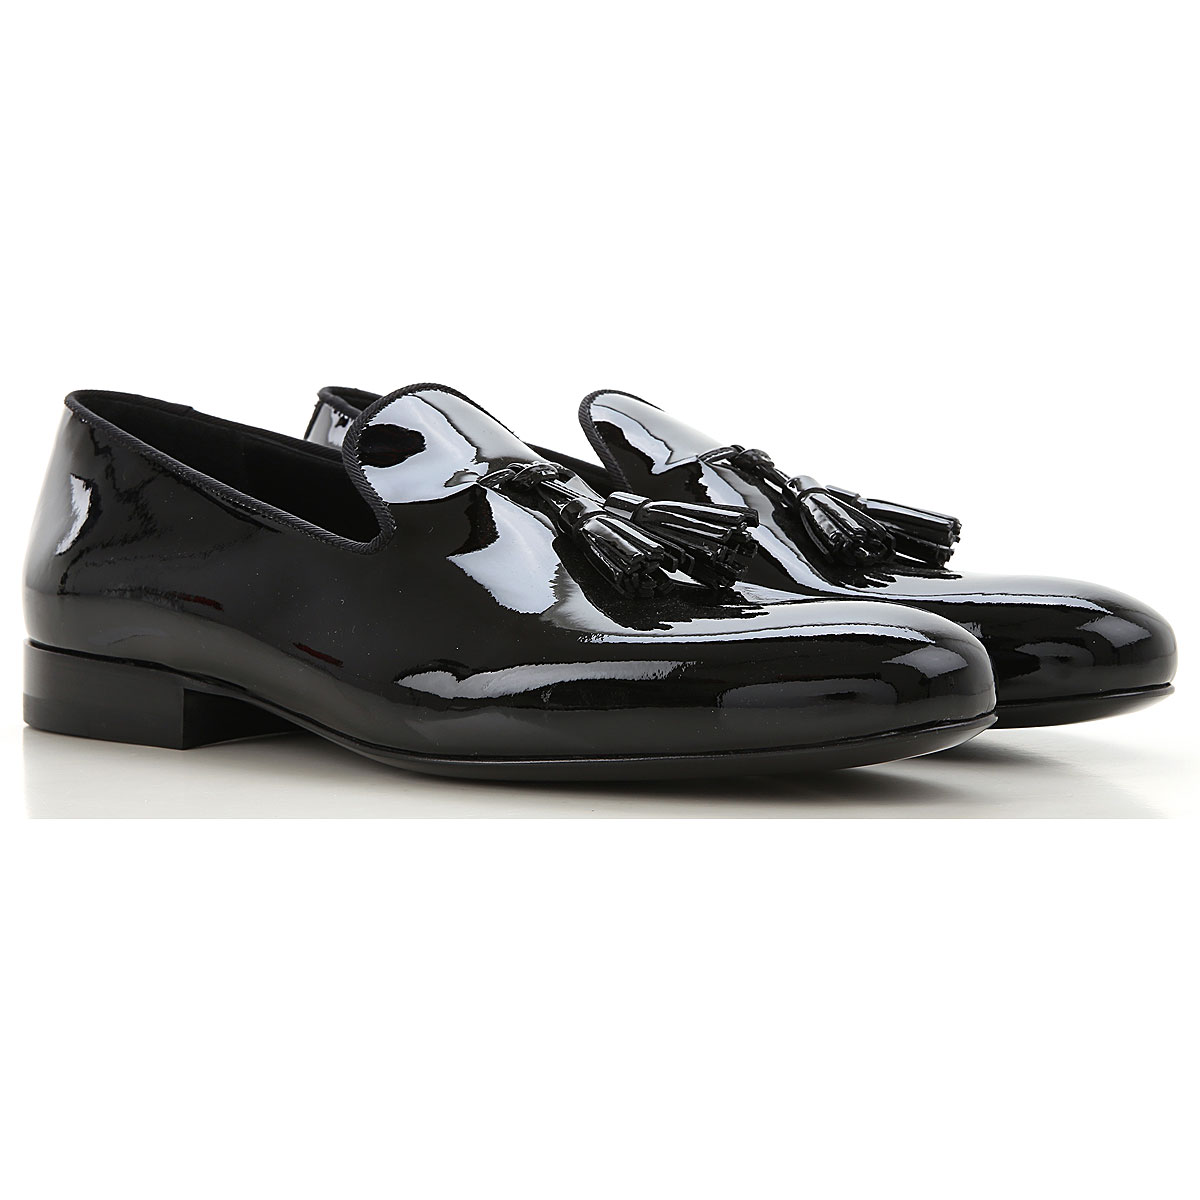 Valentino Garavani Loafers for Men On Sale in Outlet, Black, Leather, 2019, 7.5 8 8.5